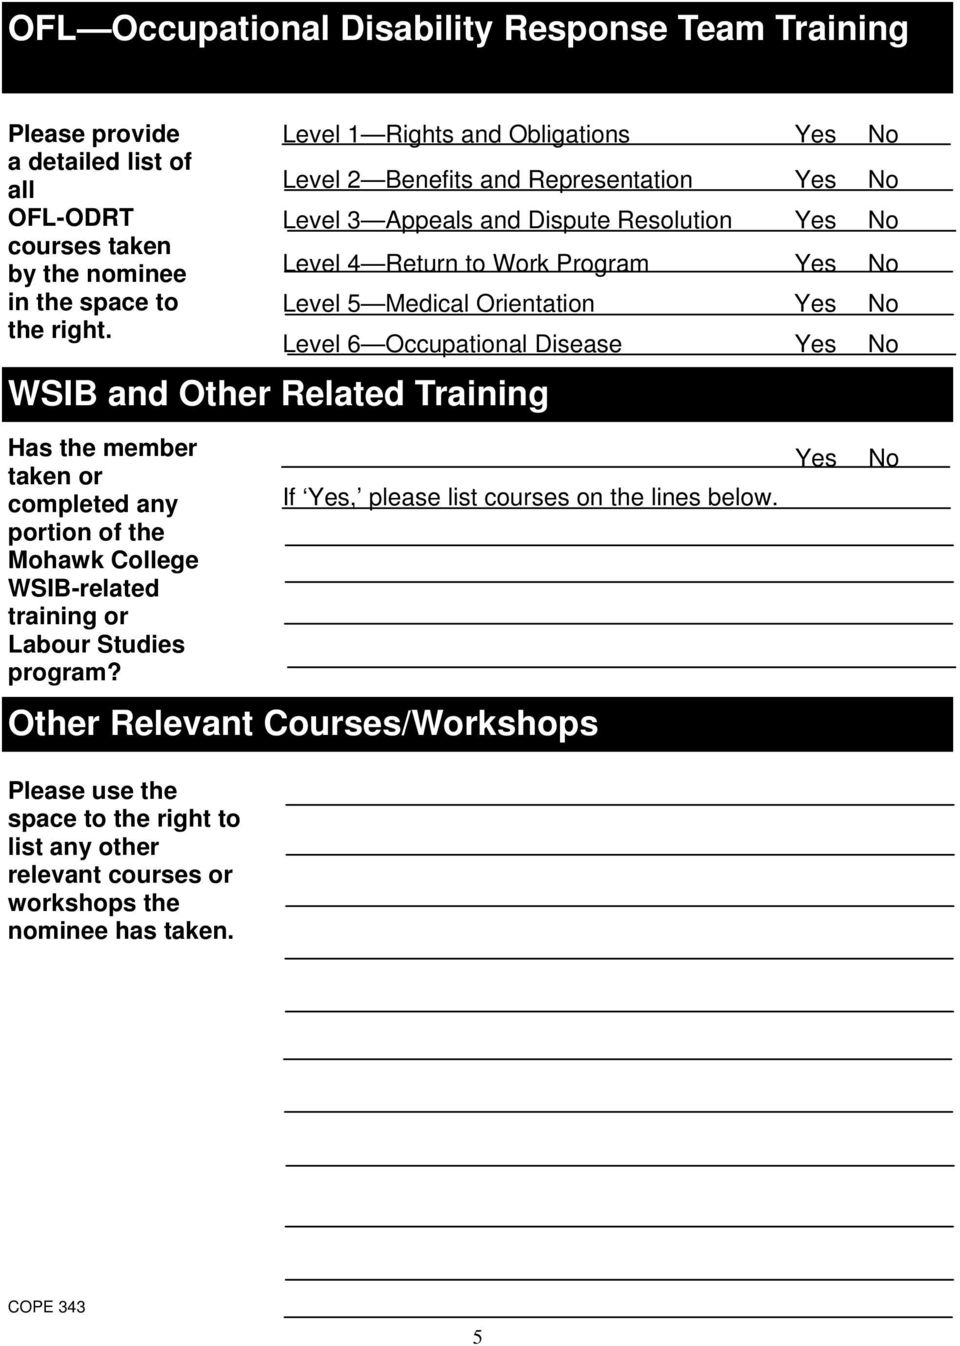 Orientation Yes No Level 6 Occupational Disease Yes No WSIB and Other Related Training Has the member taken or completed any portion of the Mohawk College WSIB-related training or